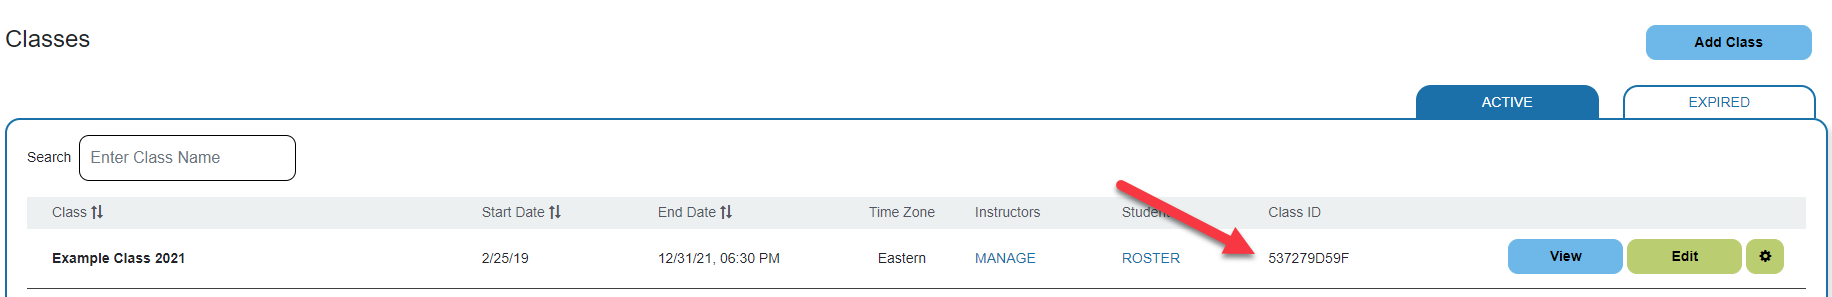 Screenshot of classes page with red arrow pointing to class ID